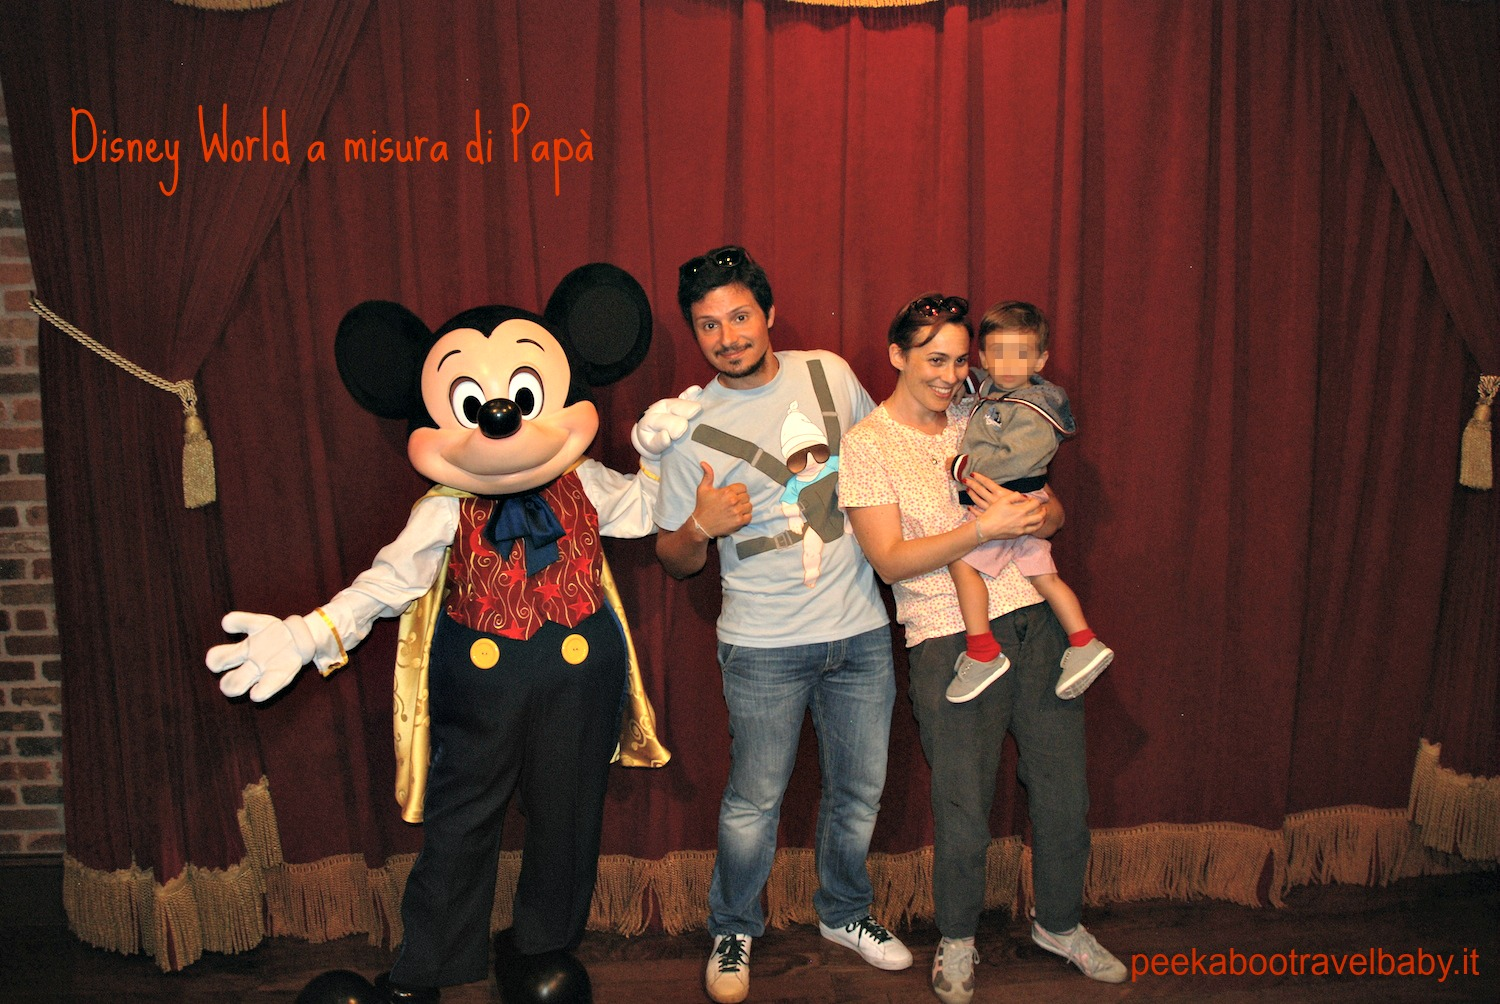 Magic Kingdom - Disney World - Topolino